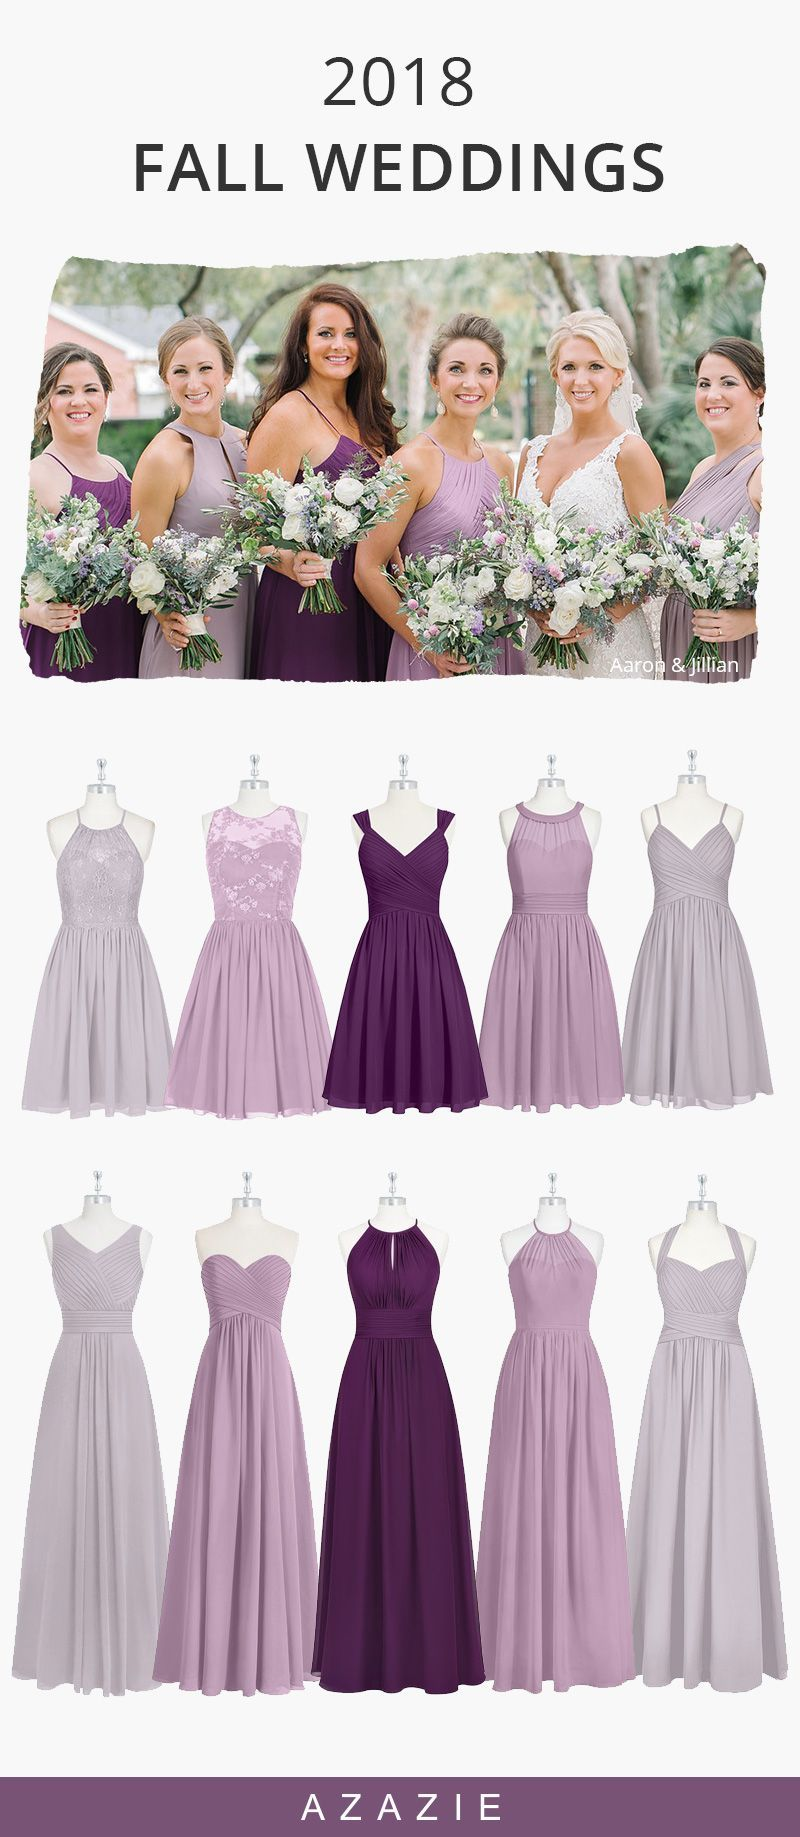 Wedding decorations red october 2018 Enjoy a mix and match wedding in fall and shop the best dresses with